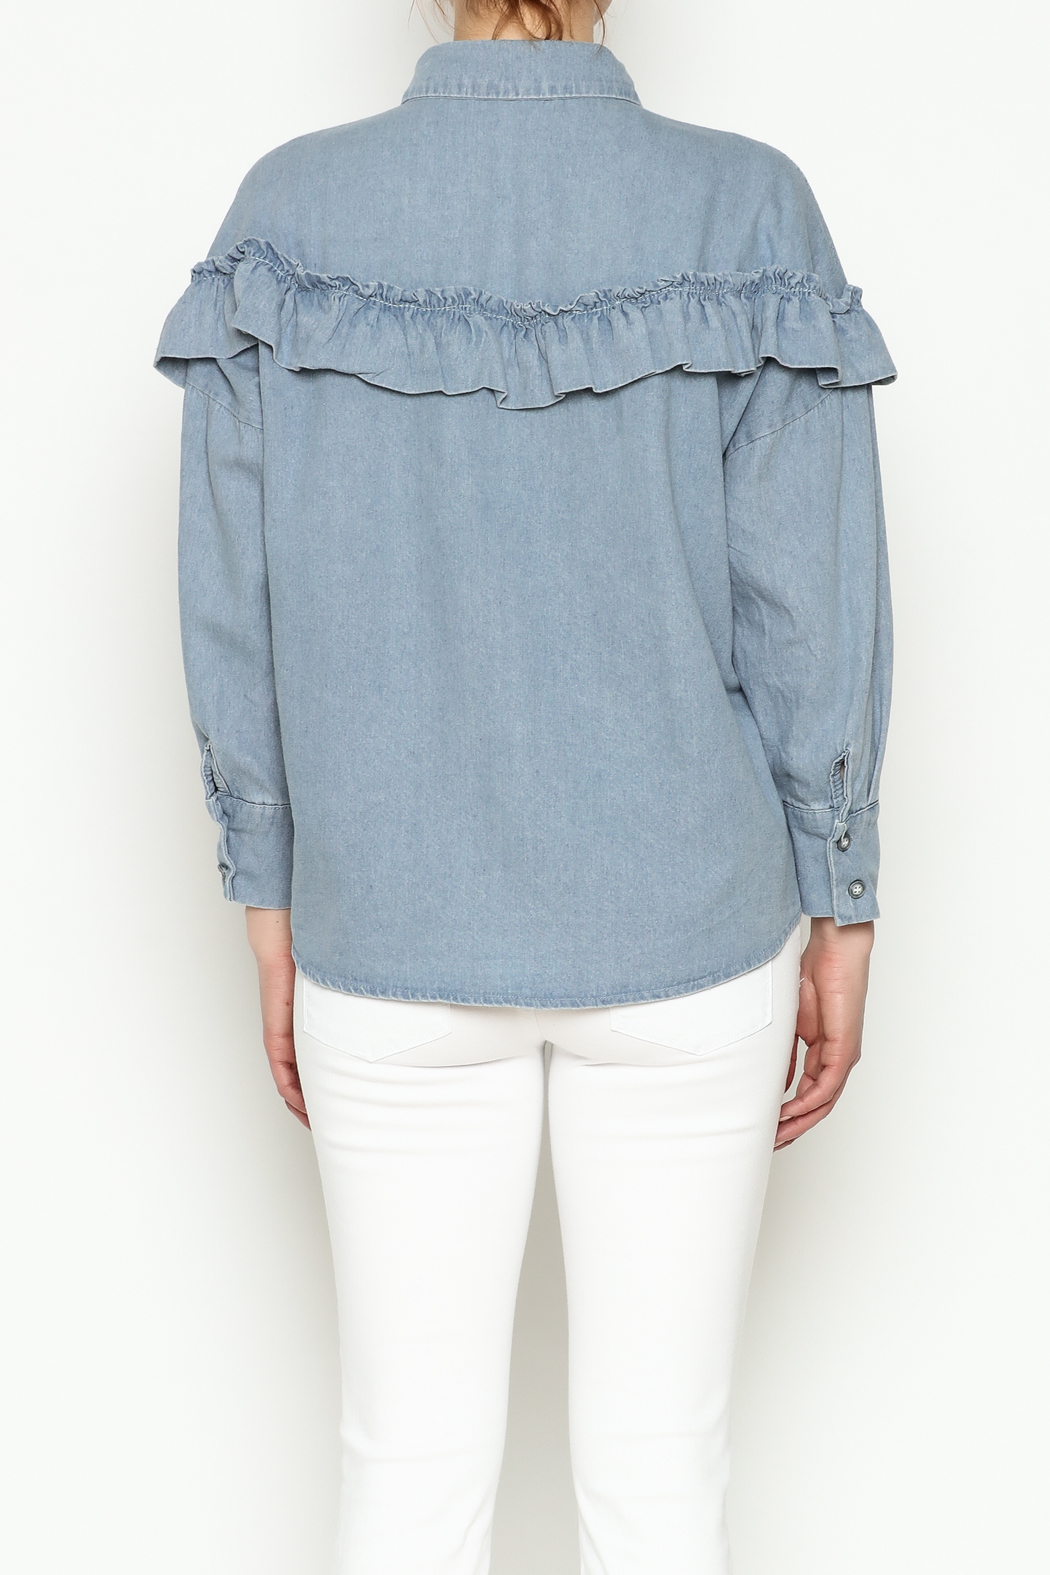 THINK CLOSET Light Denim Frill Top - Back Cropped Image